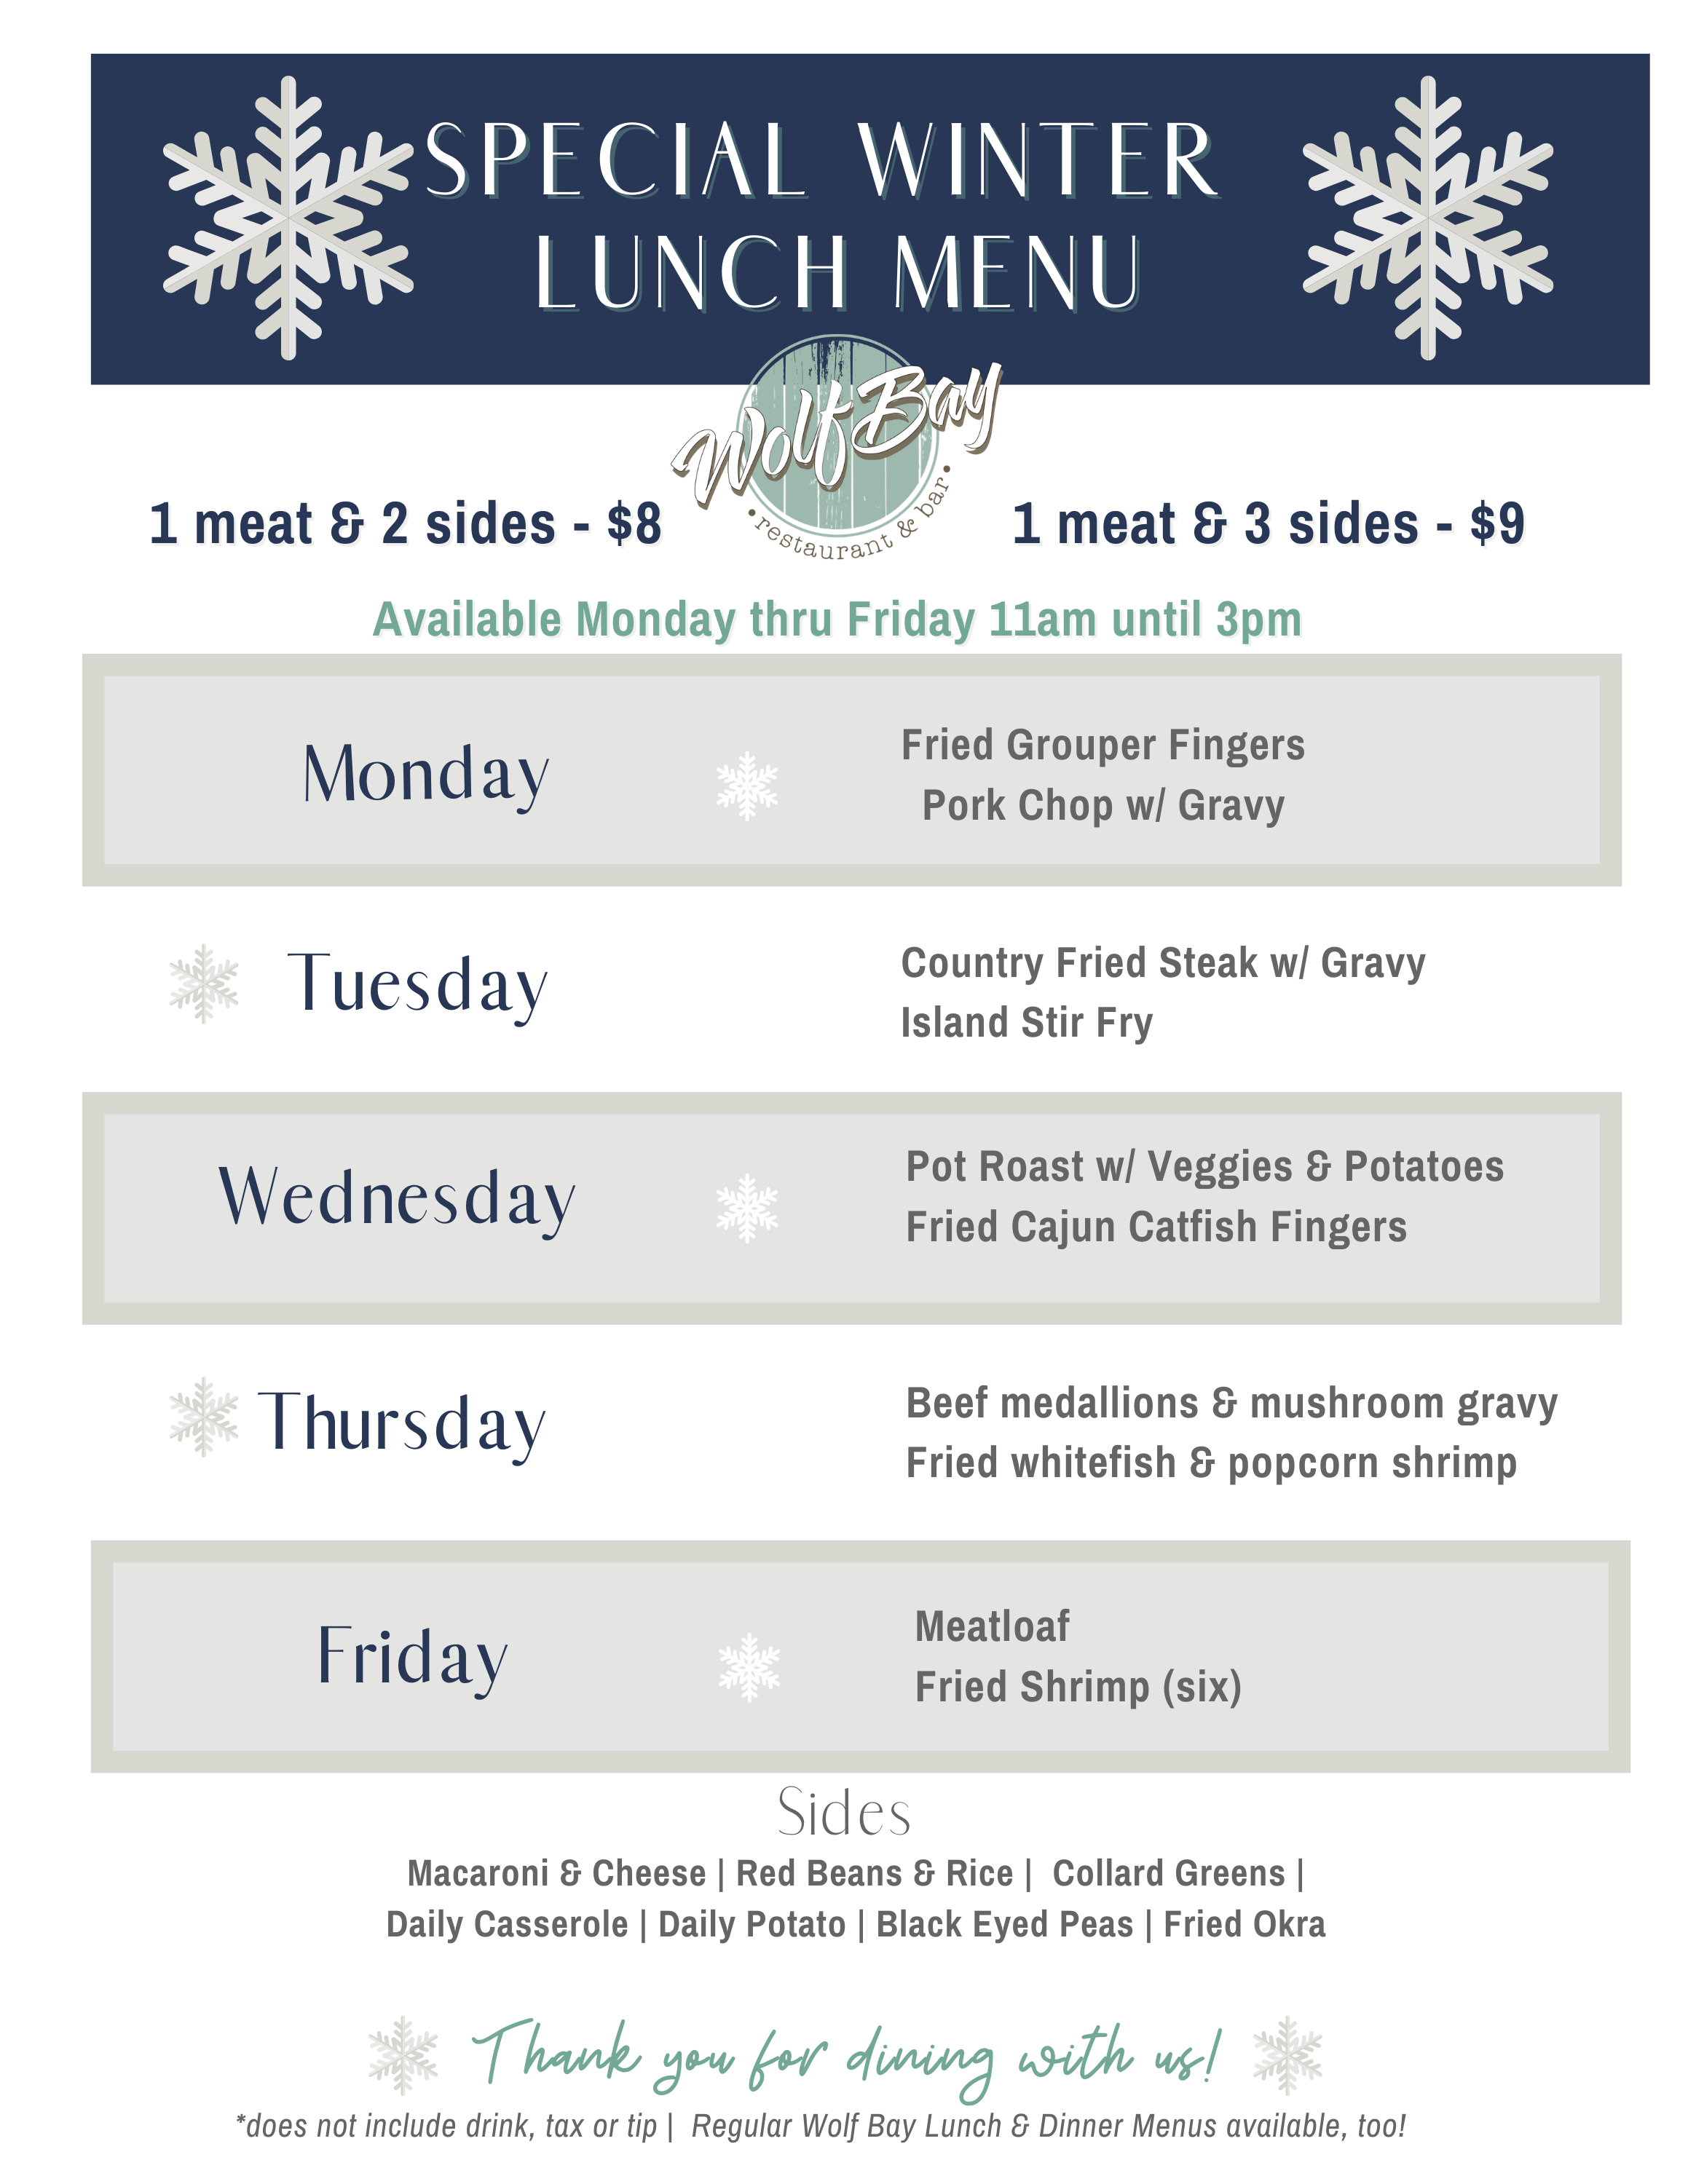 Wolf Bay Winter Lunch Menu - Special!